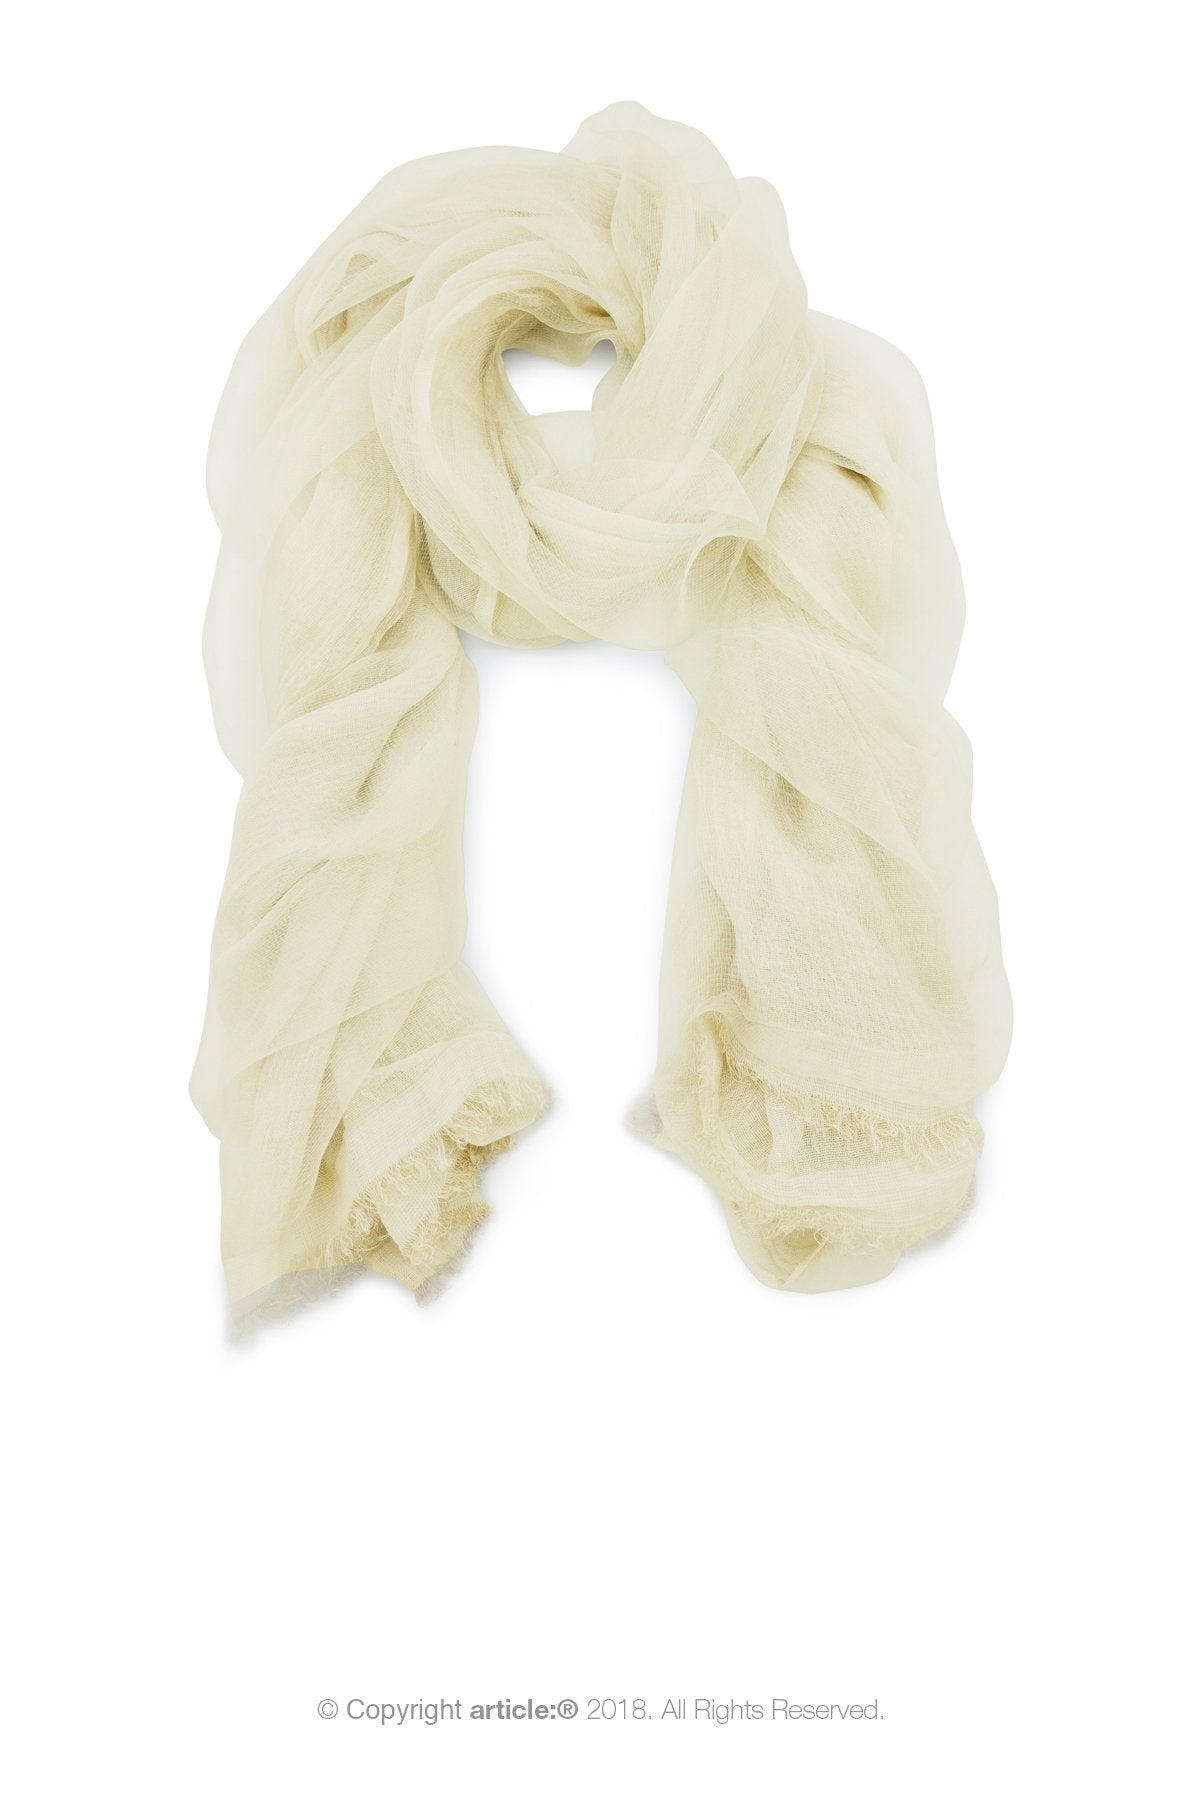 article: #900 Scarf / Wrap - Oyster